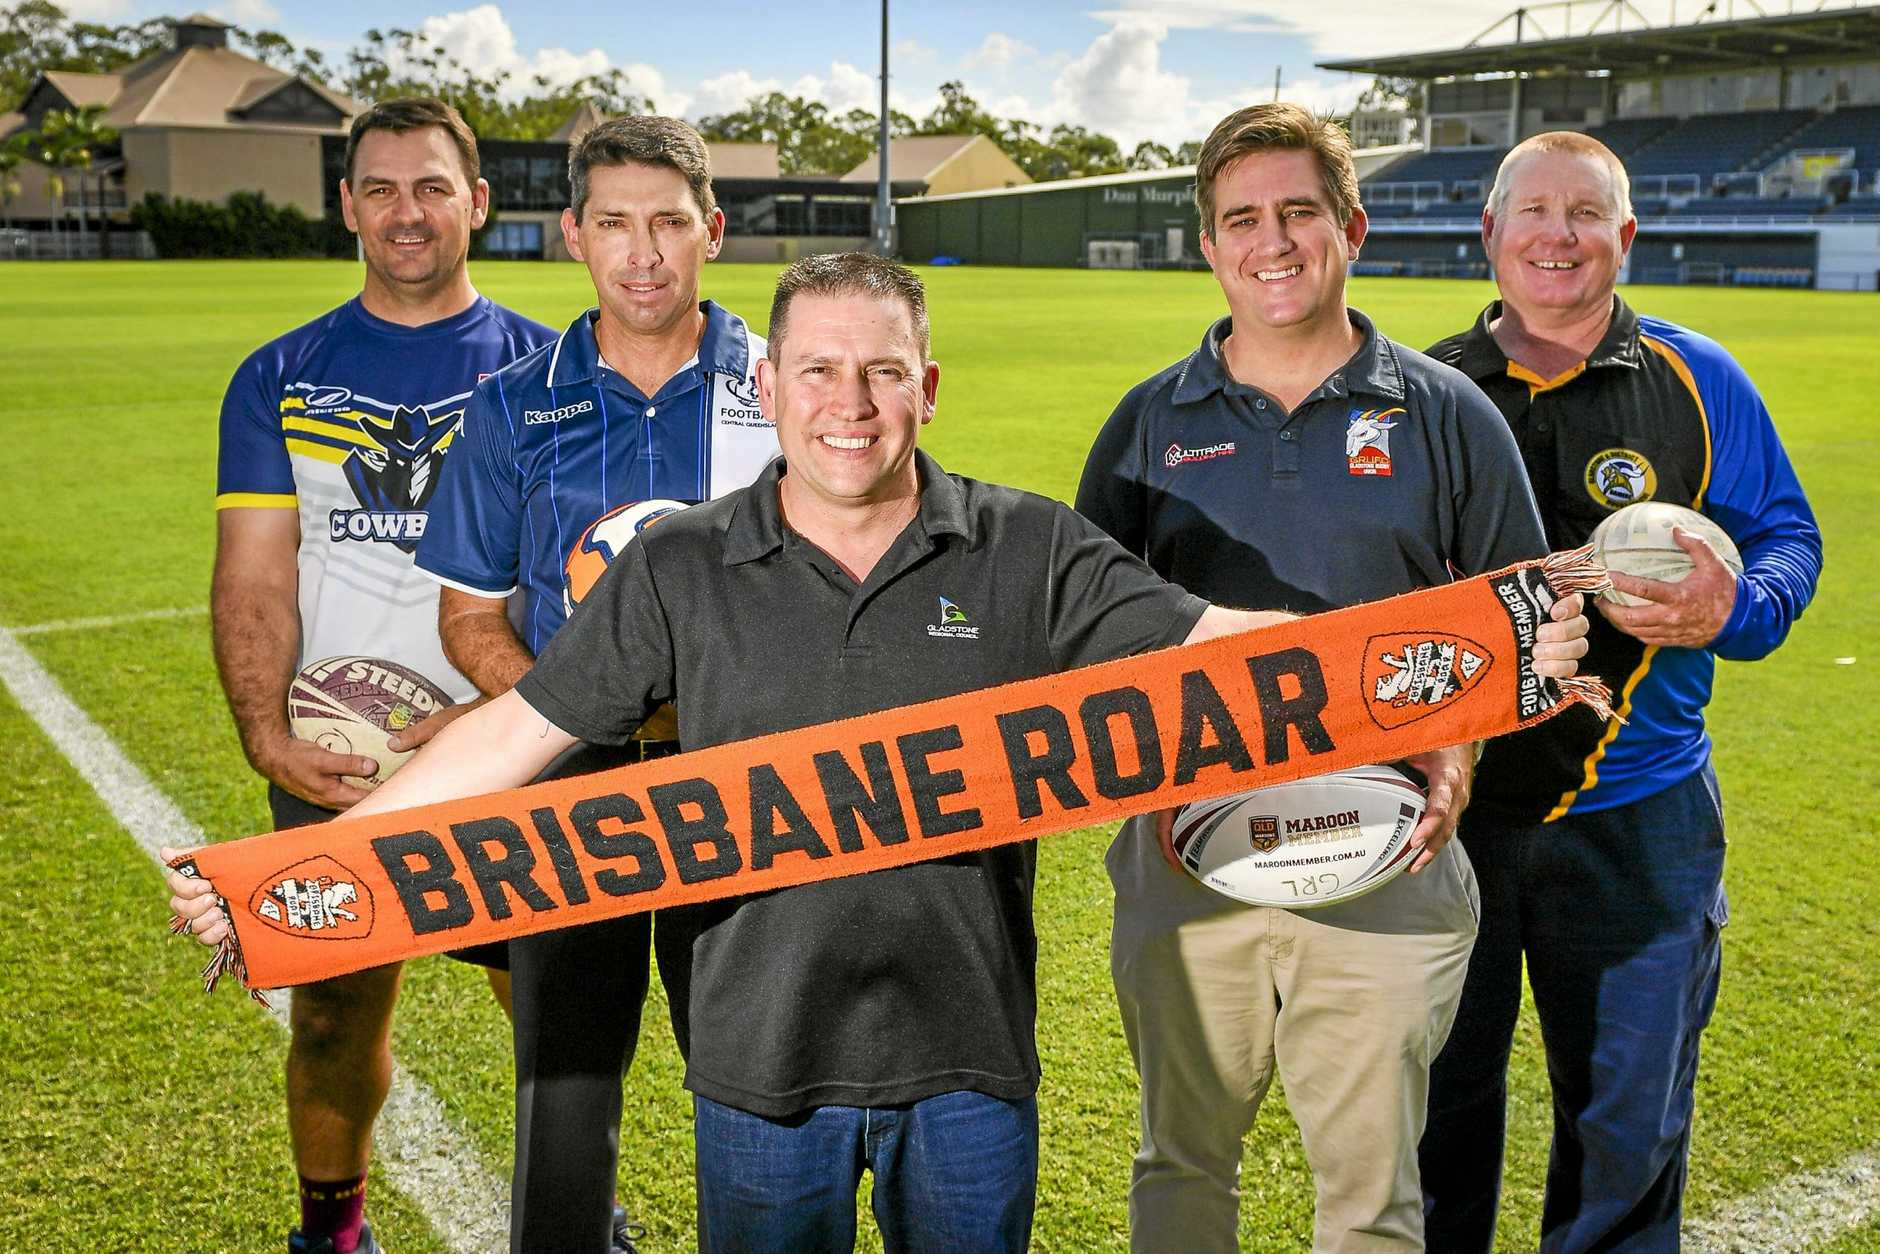 ROARSOME: Michael Cavanagh (NRL Touch Premiership), Andrew Pelling (Football CQ), Gladstone mayor Matt Burnett, Gladstone Rugby Union committee member Anthony Groen-Int-Woud and Gladstone Rugby League president Richard Duff at the announcement of future plans for Marley Brown Oval and that Brisbane Roar will play at the venue in July.